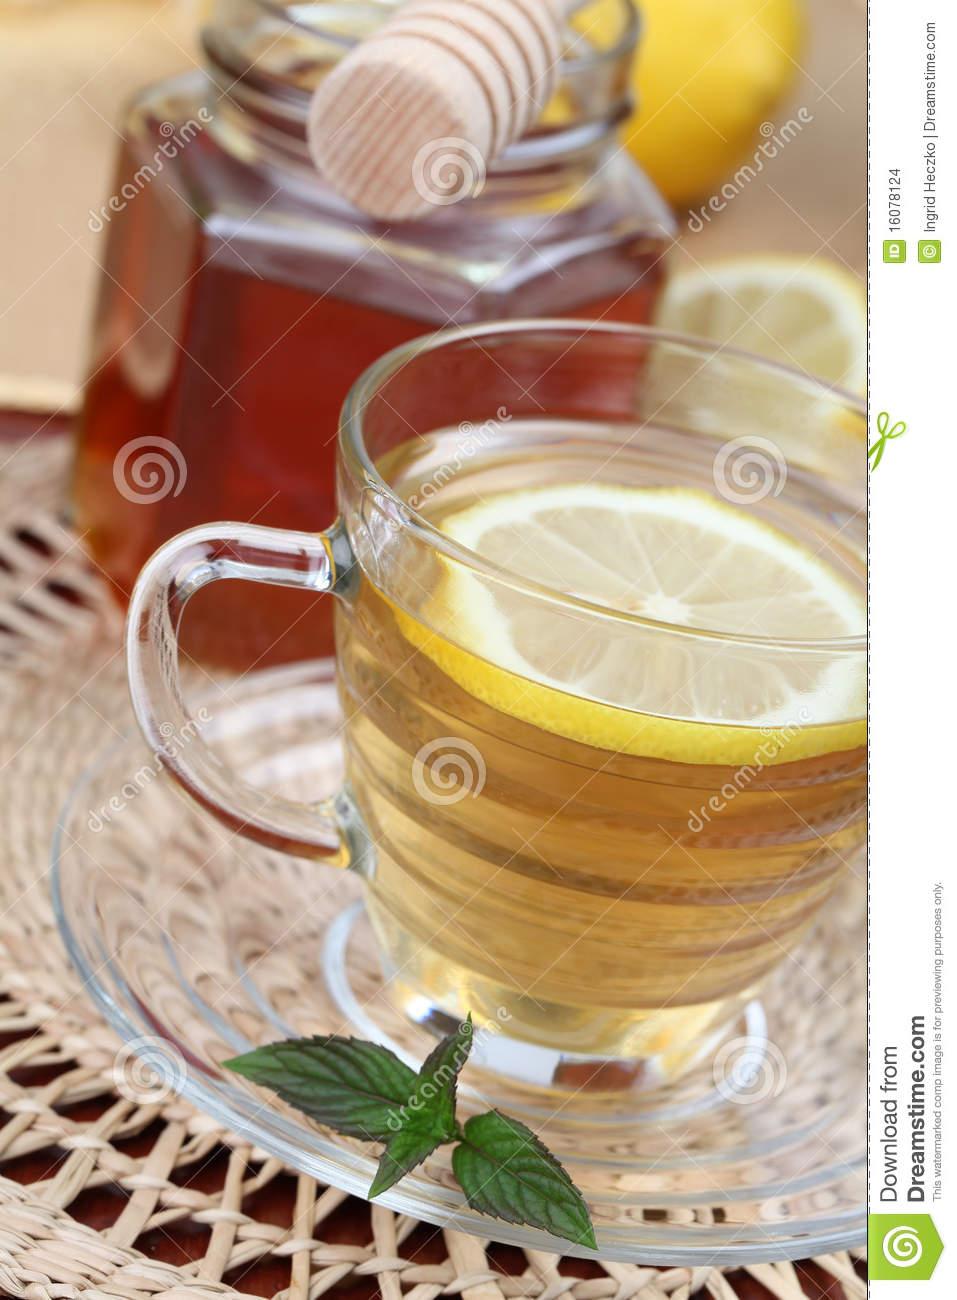 Tea With Honey And Lemon Stock Images - Image: 16078124